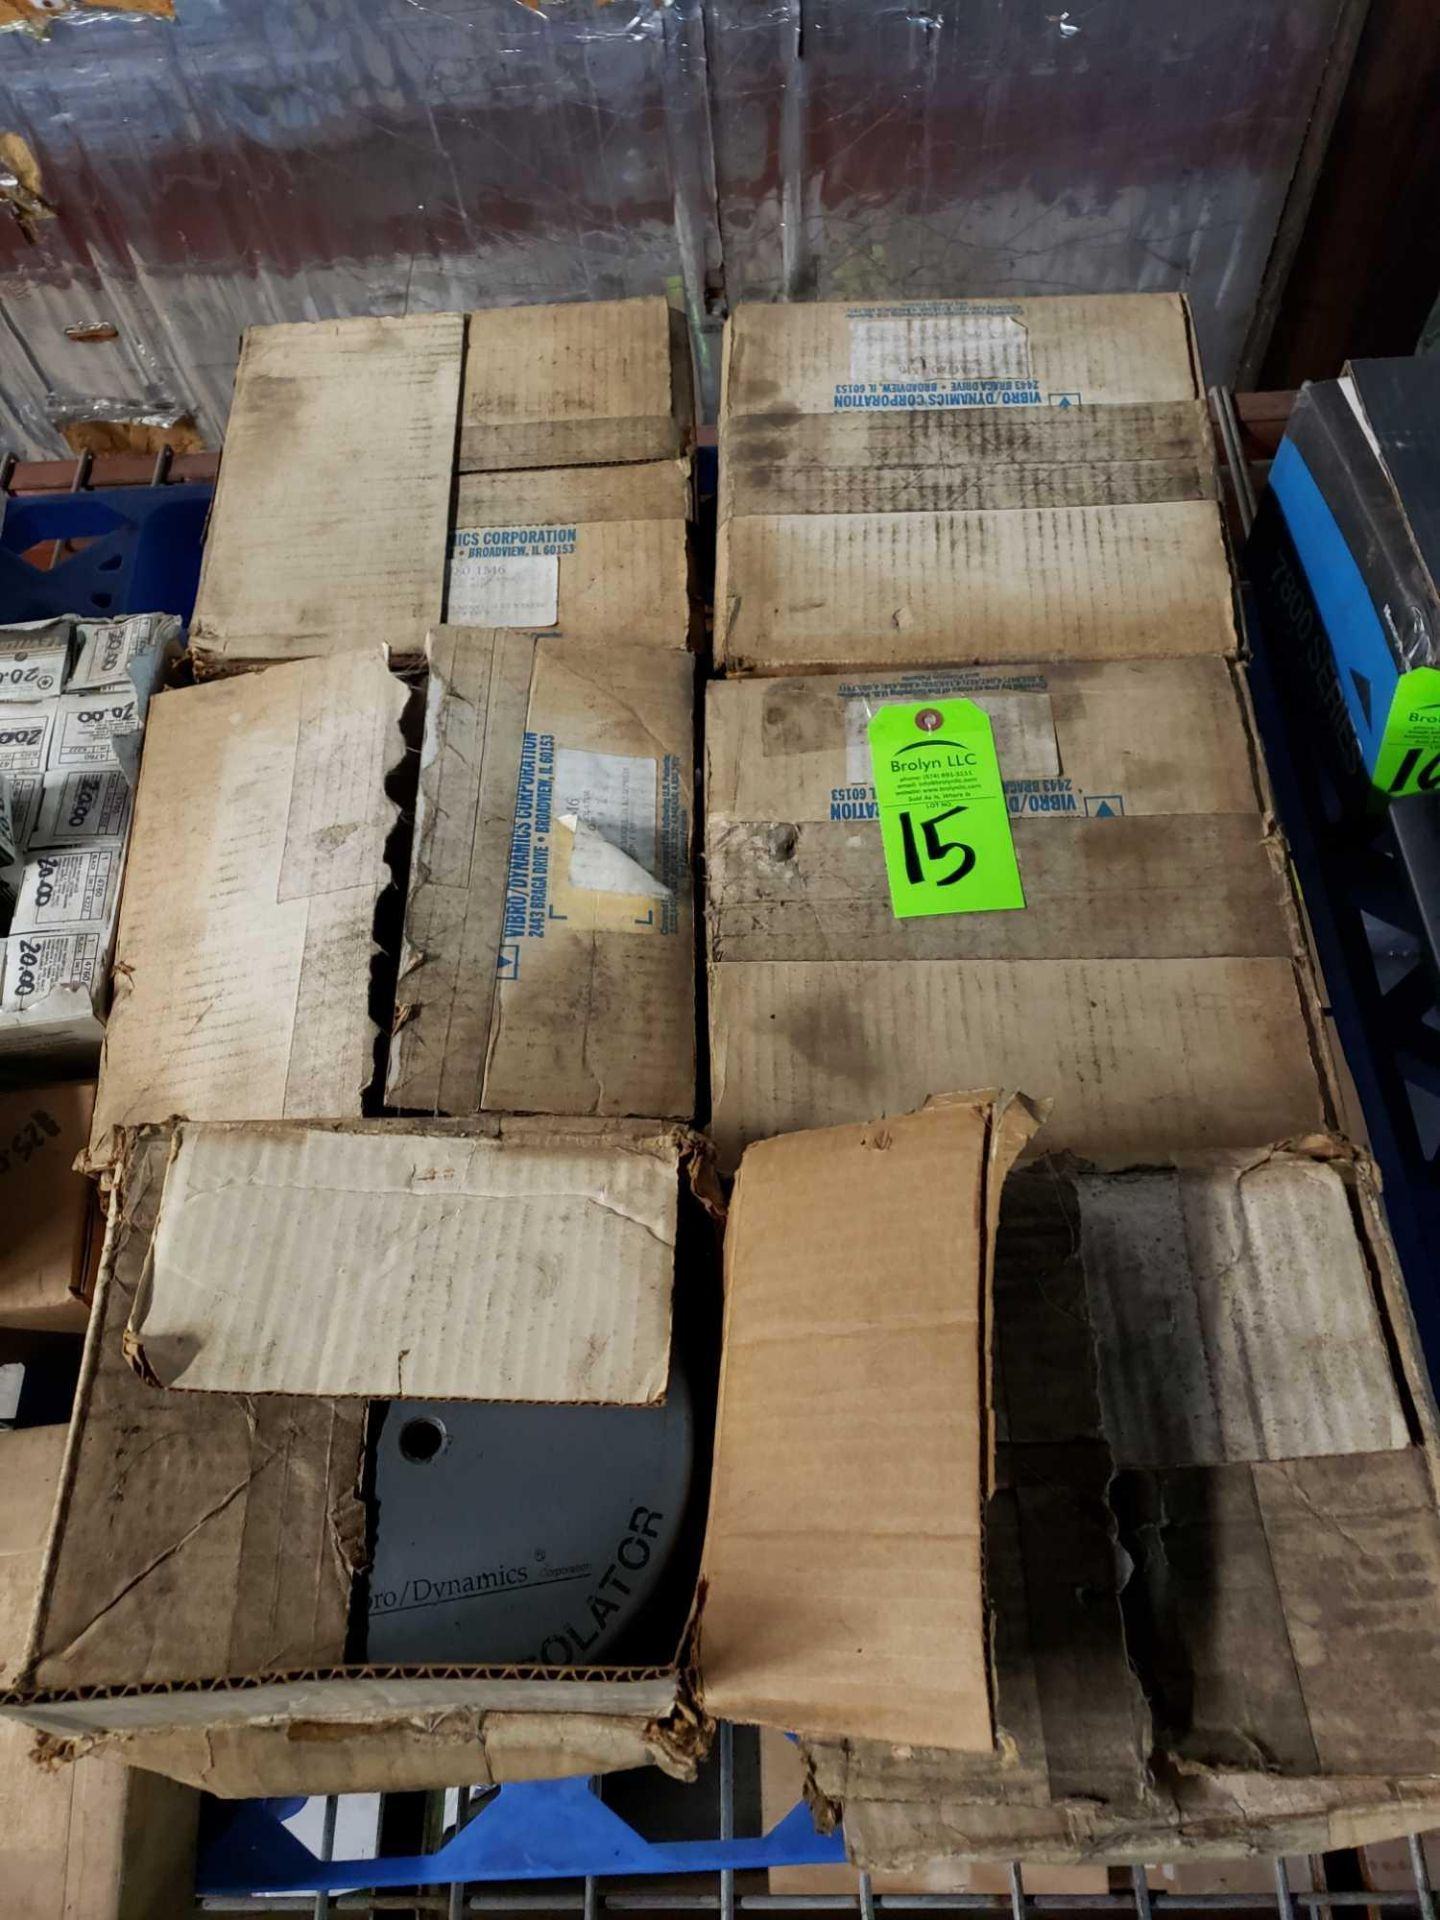 Lot 15 - Qty 6 - pairs Micro/Level Isolater machine isolator pads. New in boxes.